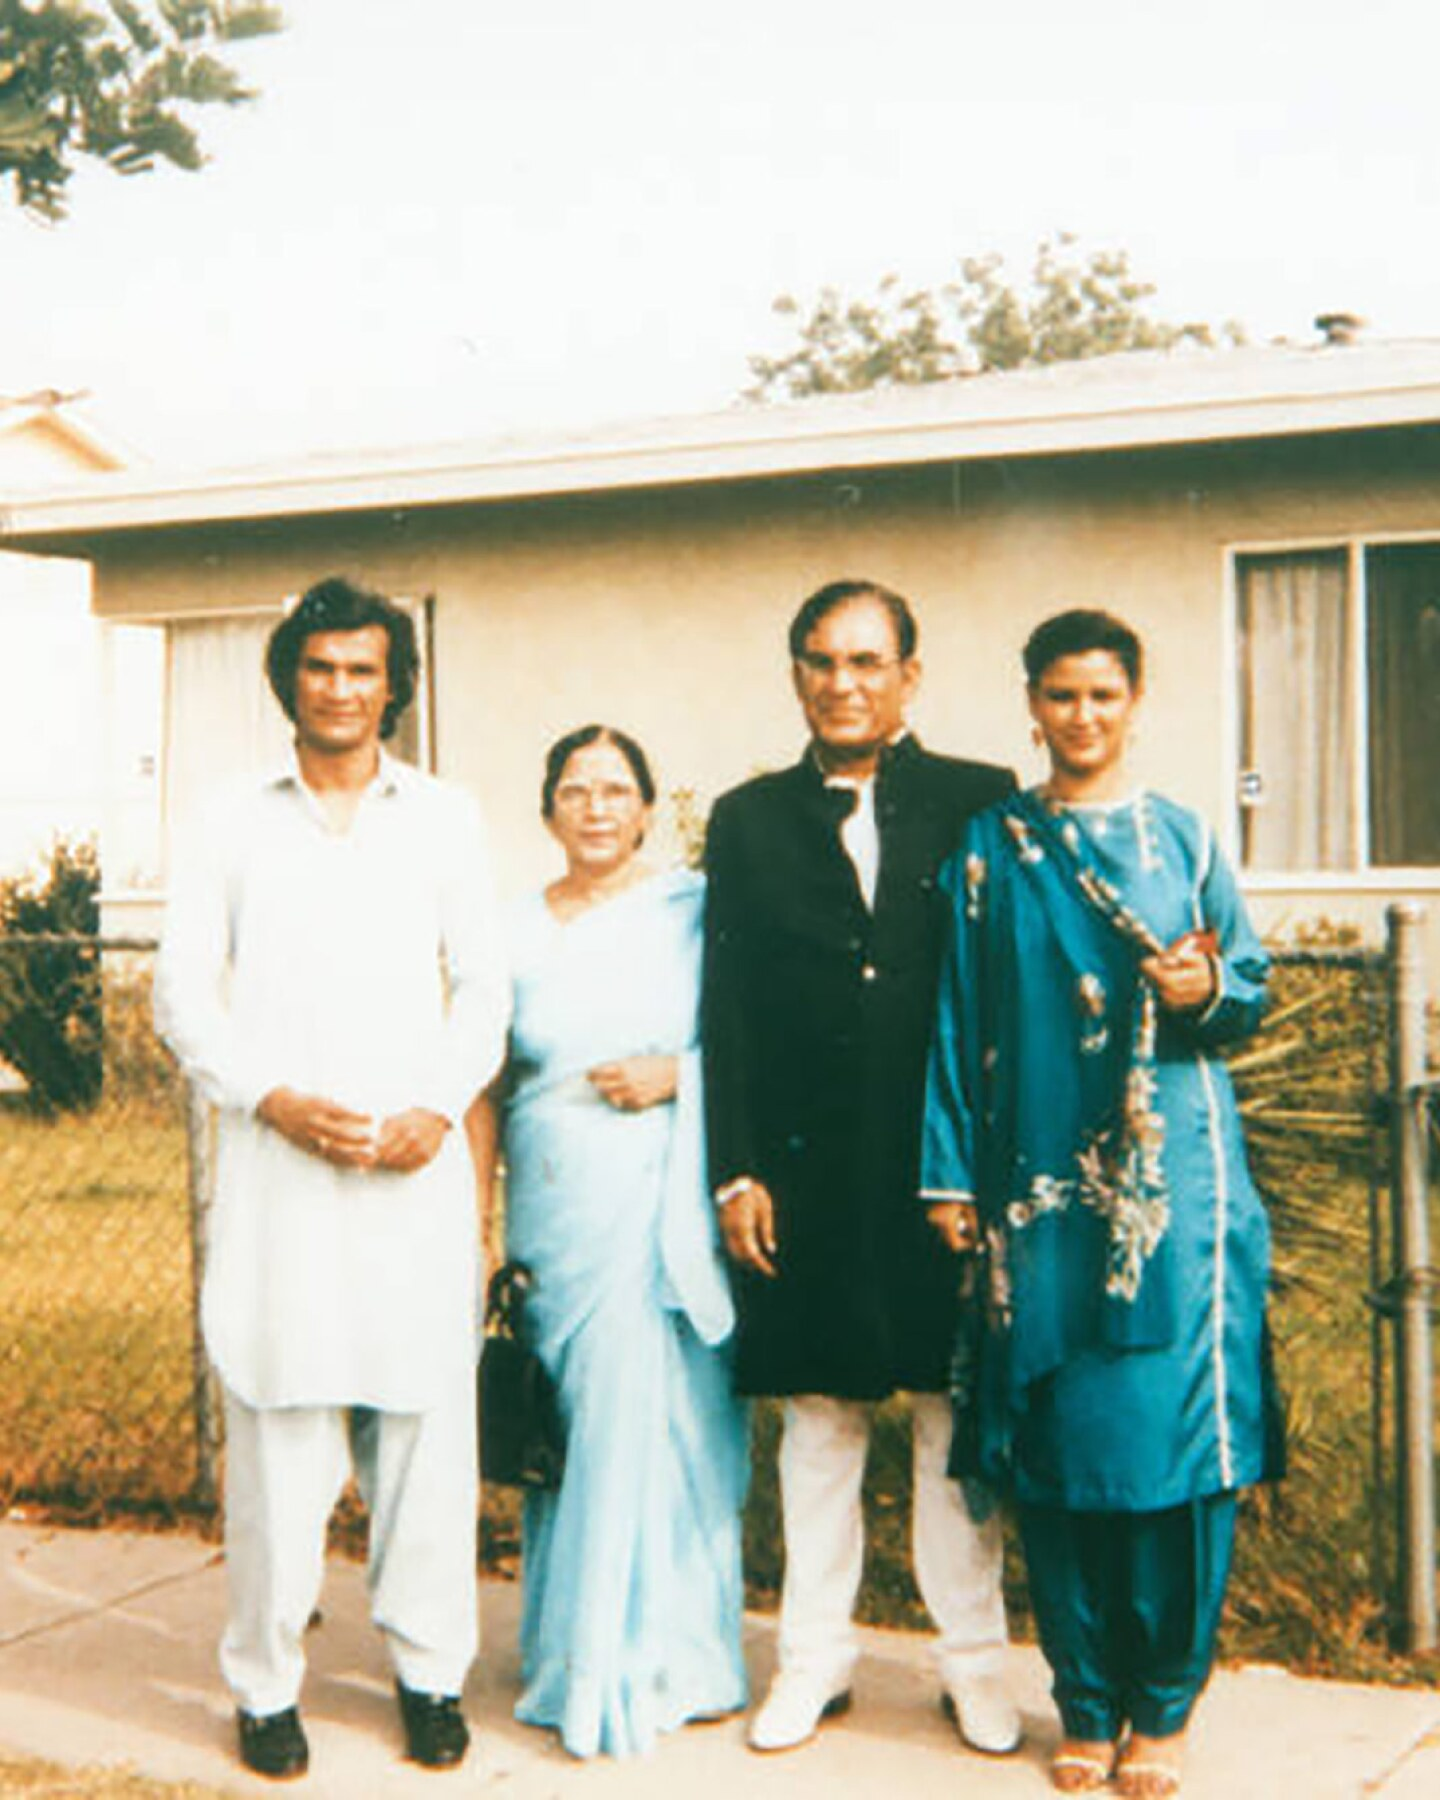 Syed and Qaiser with their children Qamar and Faozia in front of a home in Los Angeles. | Shades of L.A. Collection / LAPL